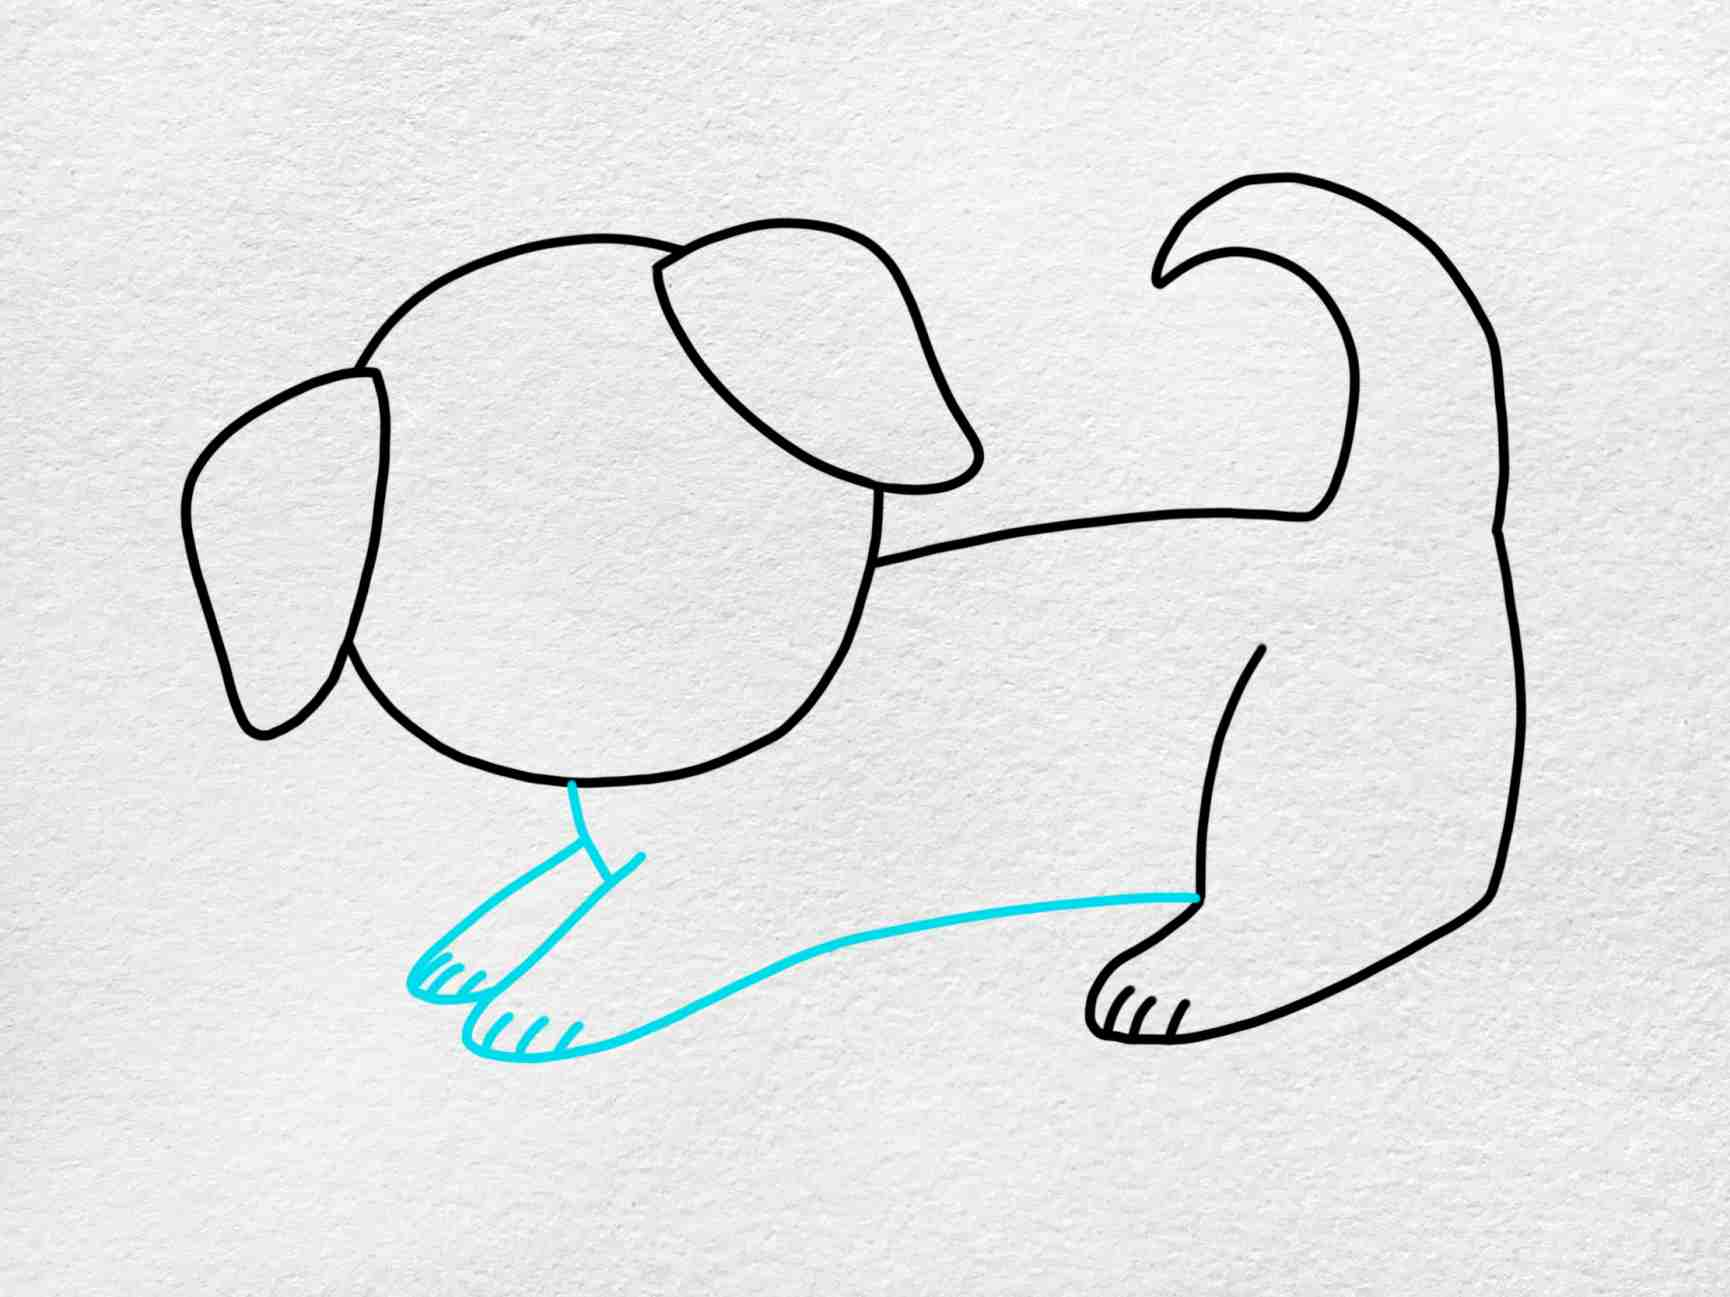 How To Draw A Puppy Step By Step: Step 4